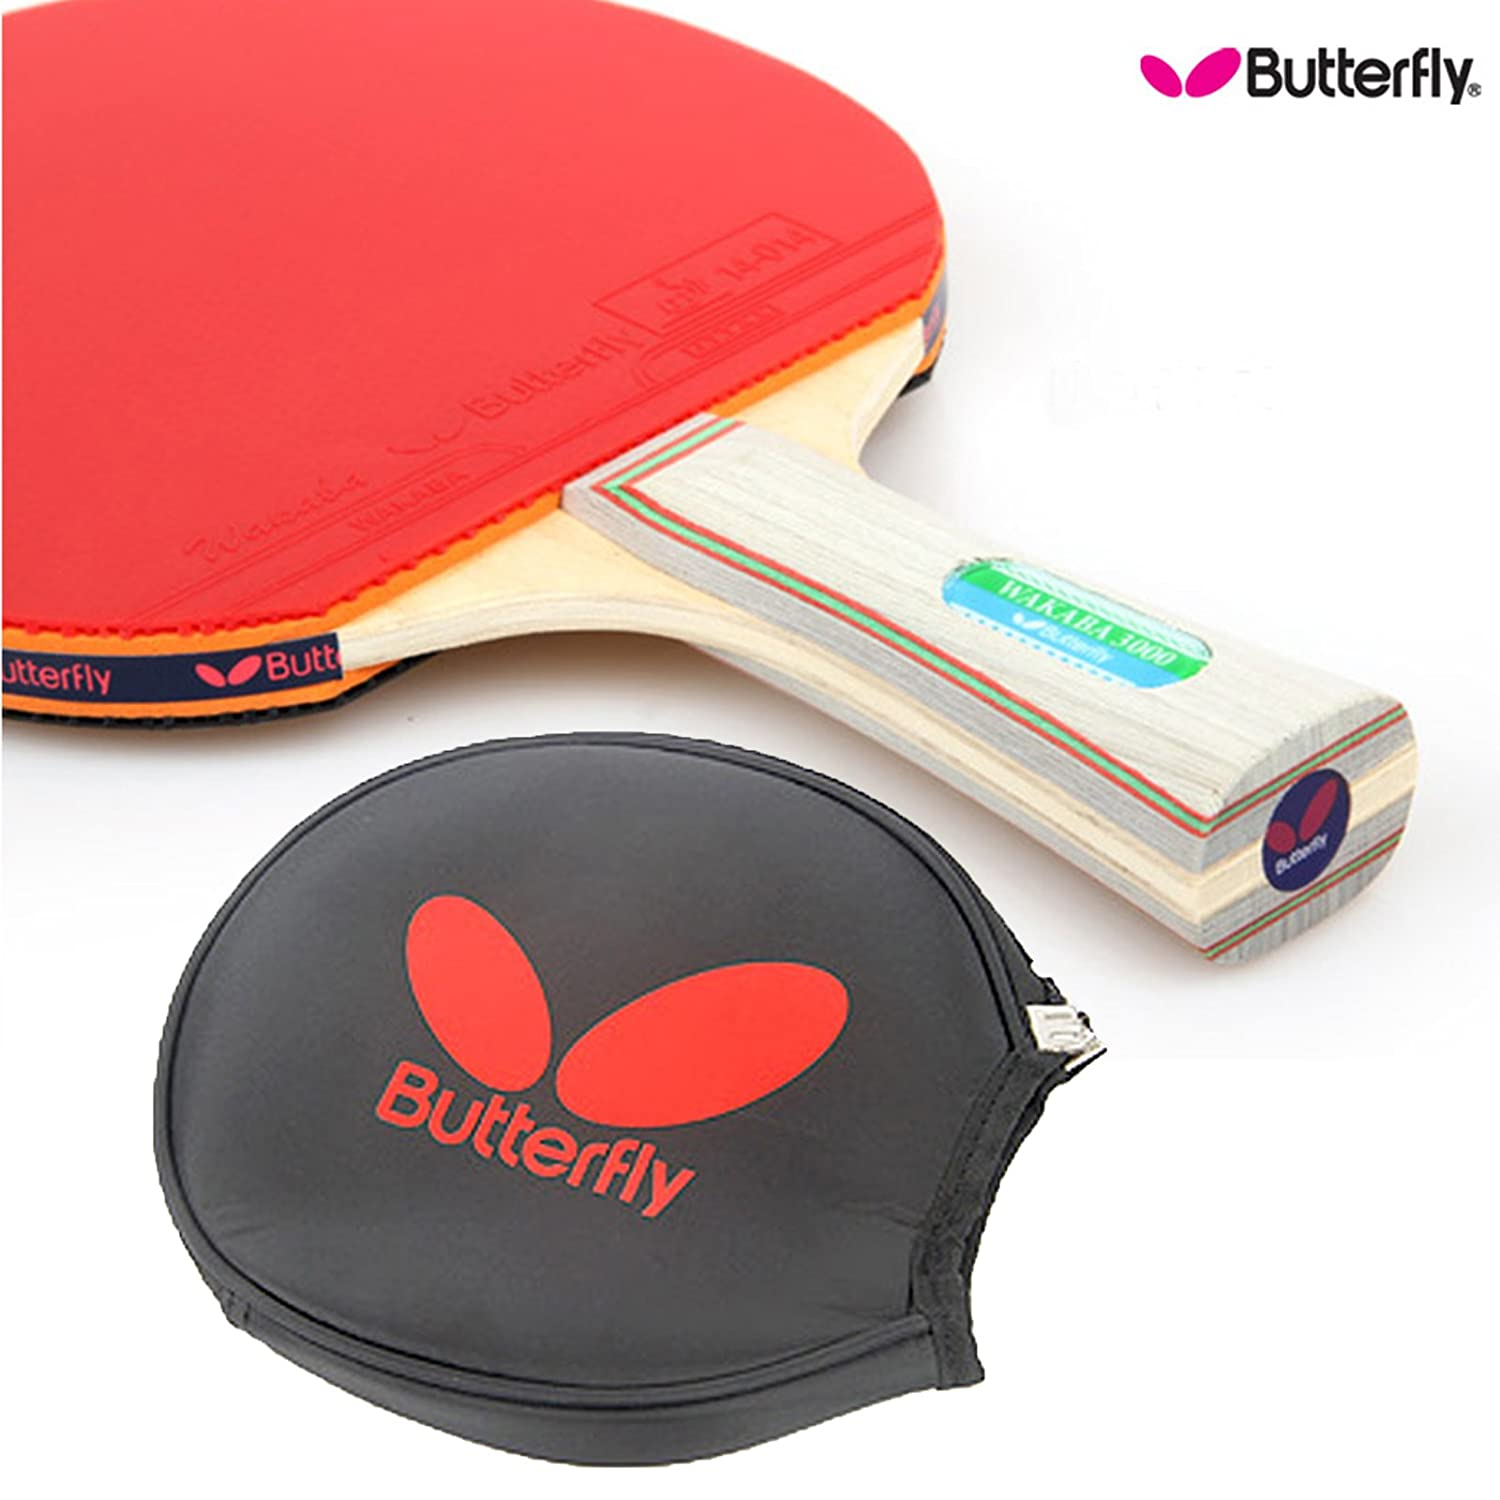 tennis rollaway table spirit p butterfly